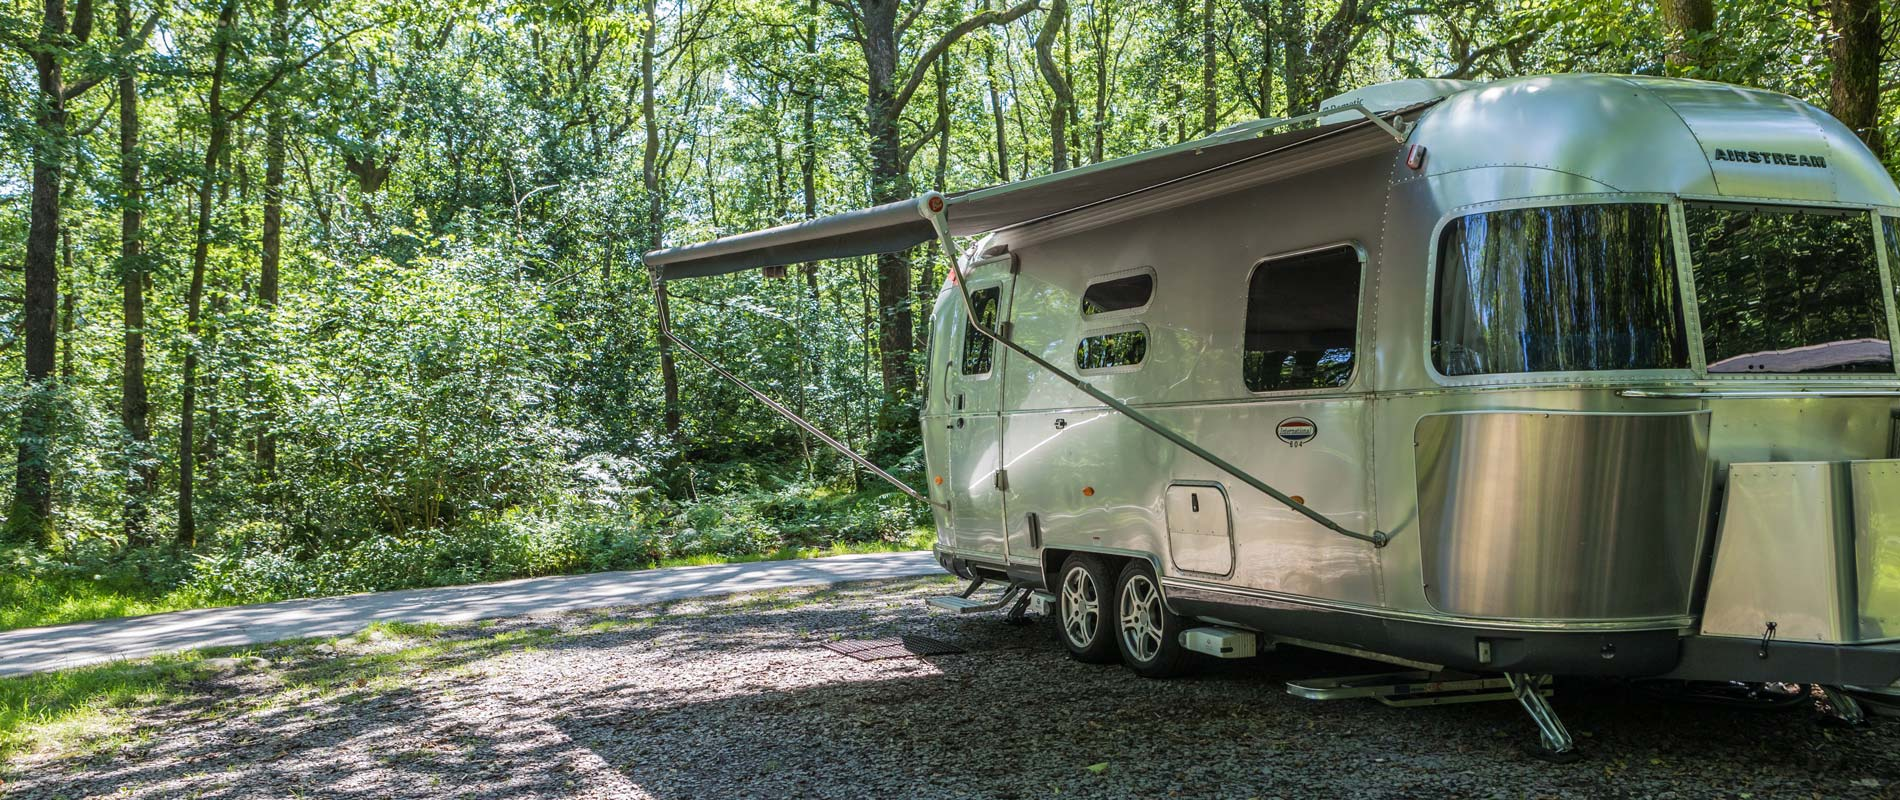 Classic airstream in wooded area with extending awning